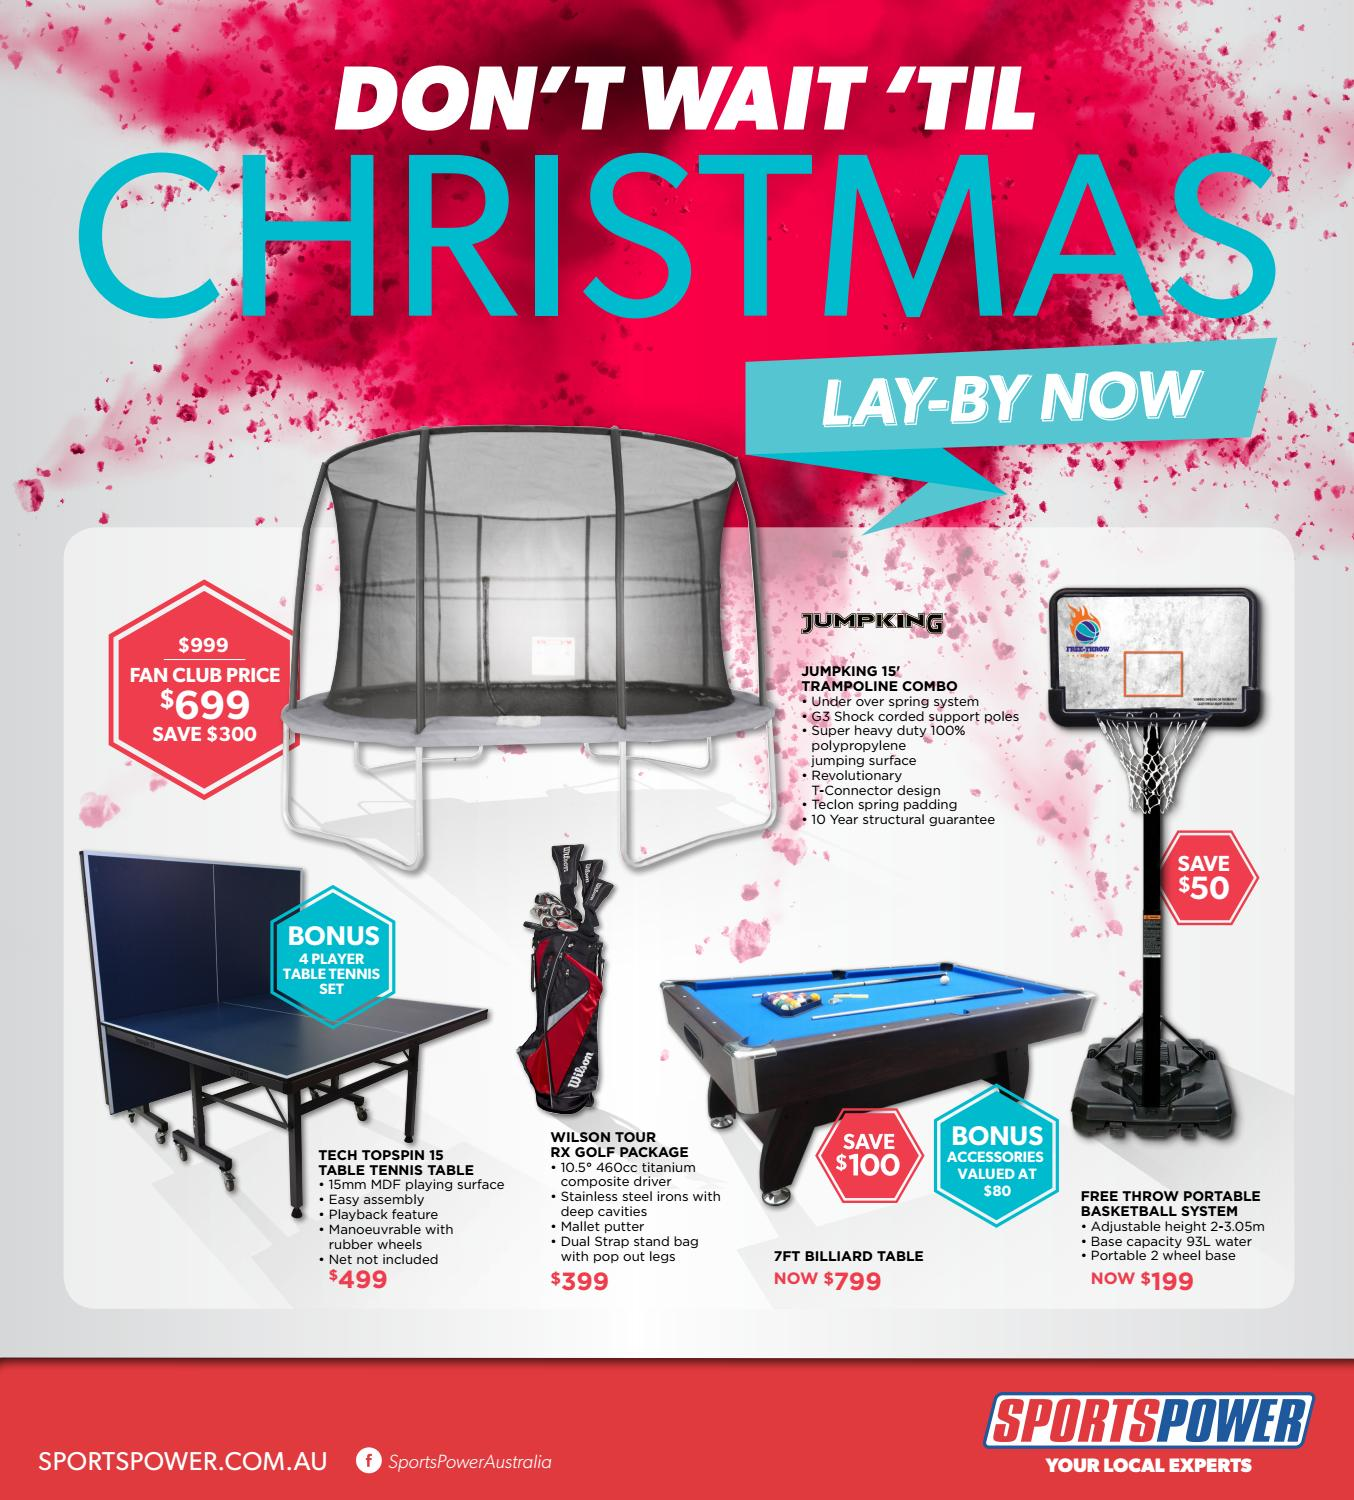 SPORTSPOWER - Don't wait until Christmas by Associated